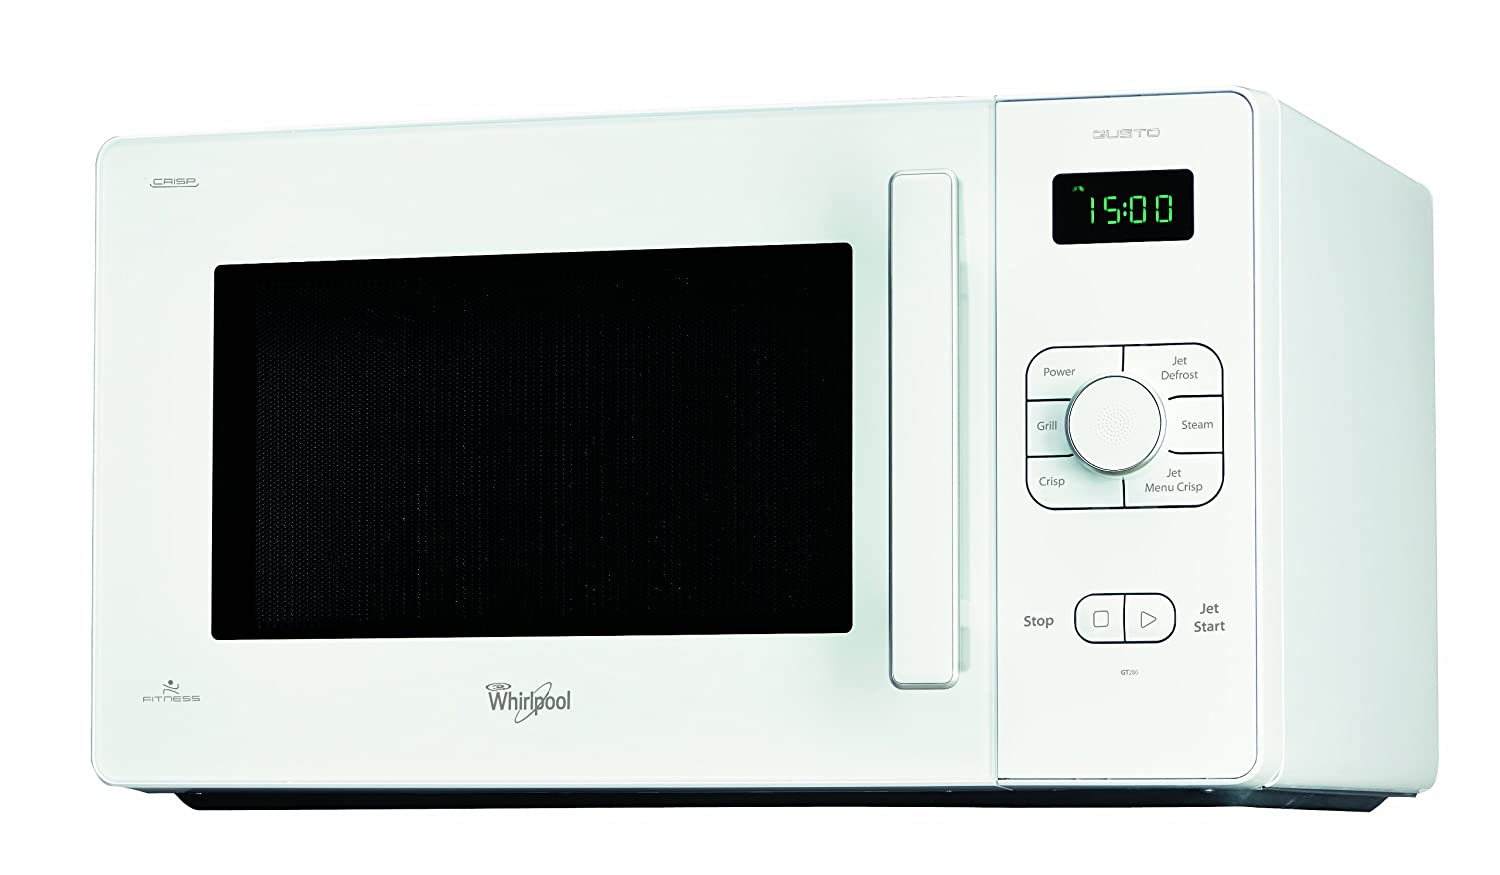 Whirlpool GT 286 WH - Microondas (10 A, 1900 W, 521 mm, 391 mm, 299 mm) , color blanco [Importado de Italia] GT286/WH